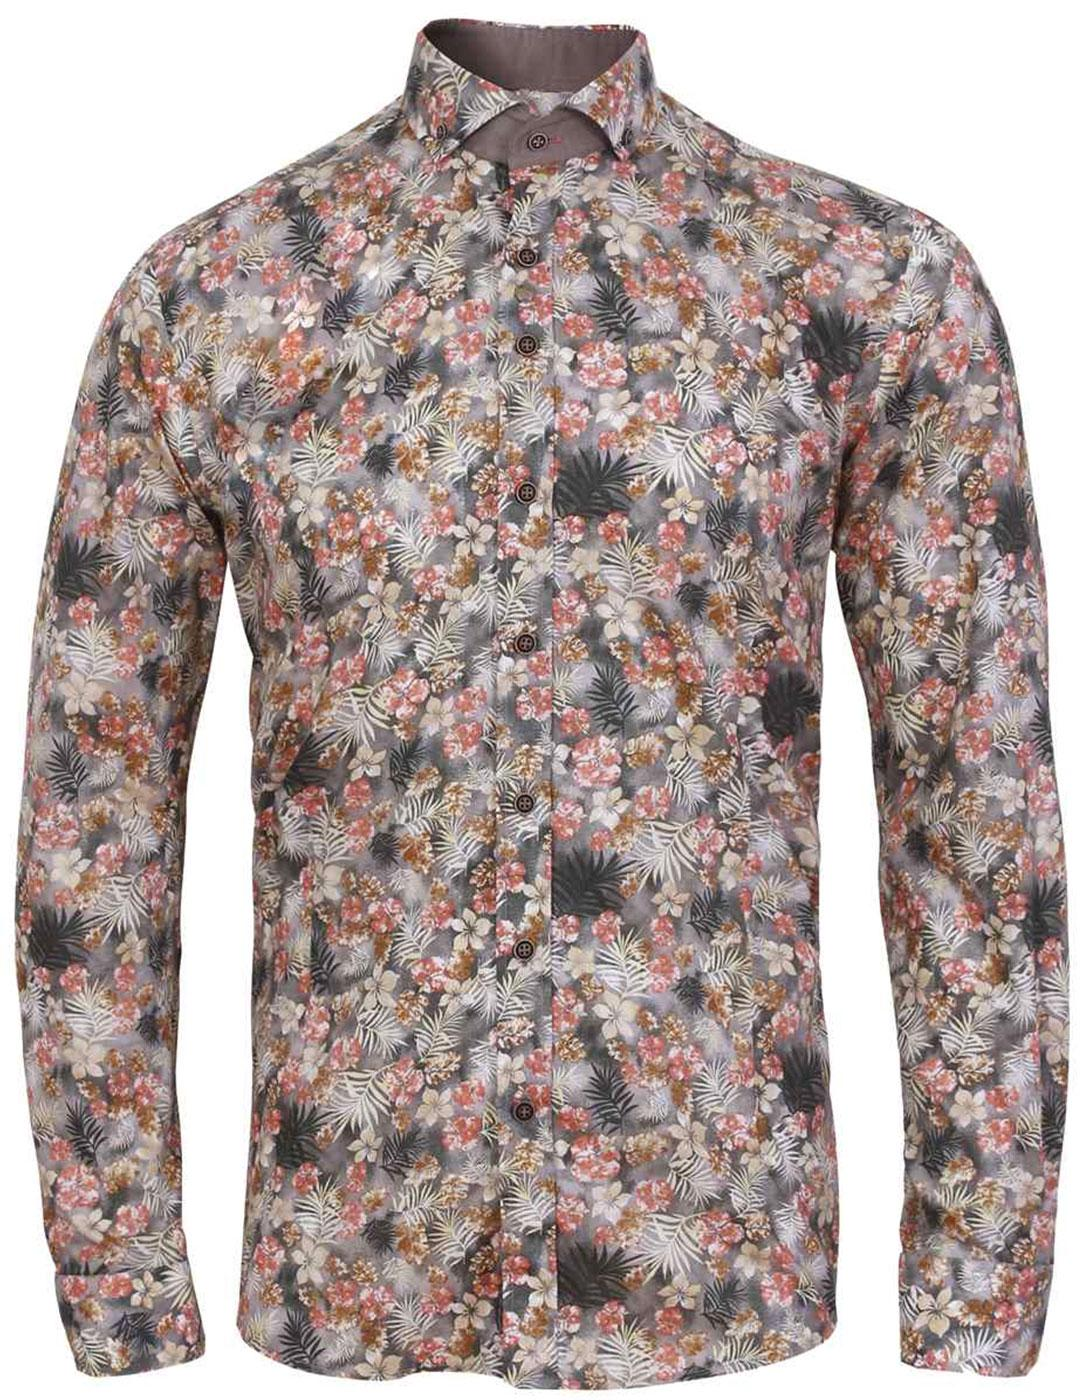 Autumn Floral GUIDE LONDON Retro 60s Mod Shirt